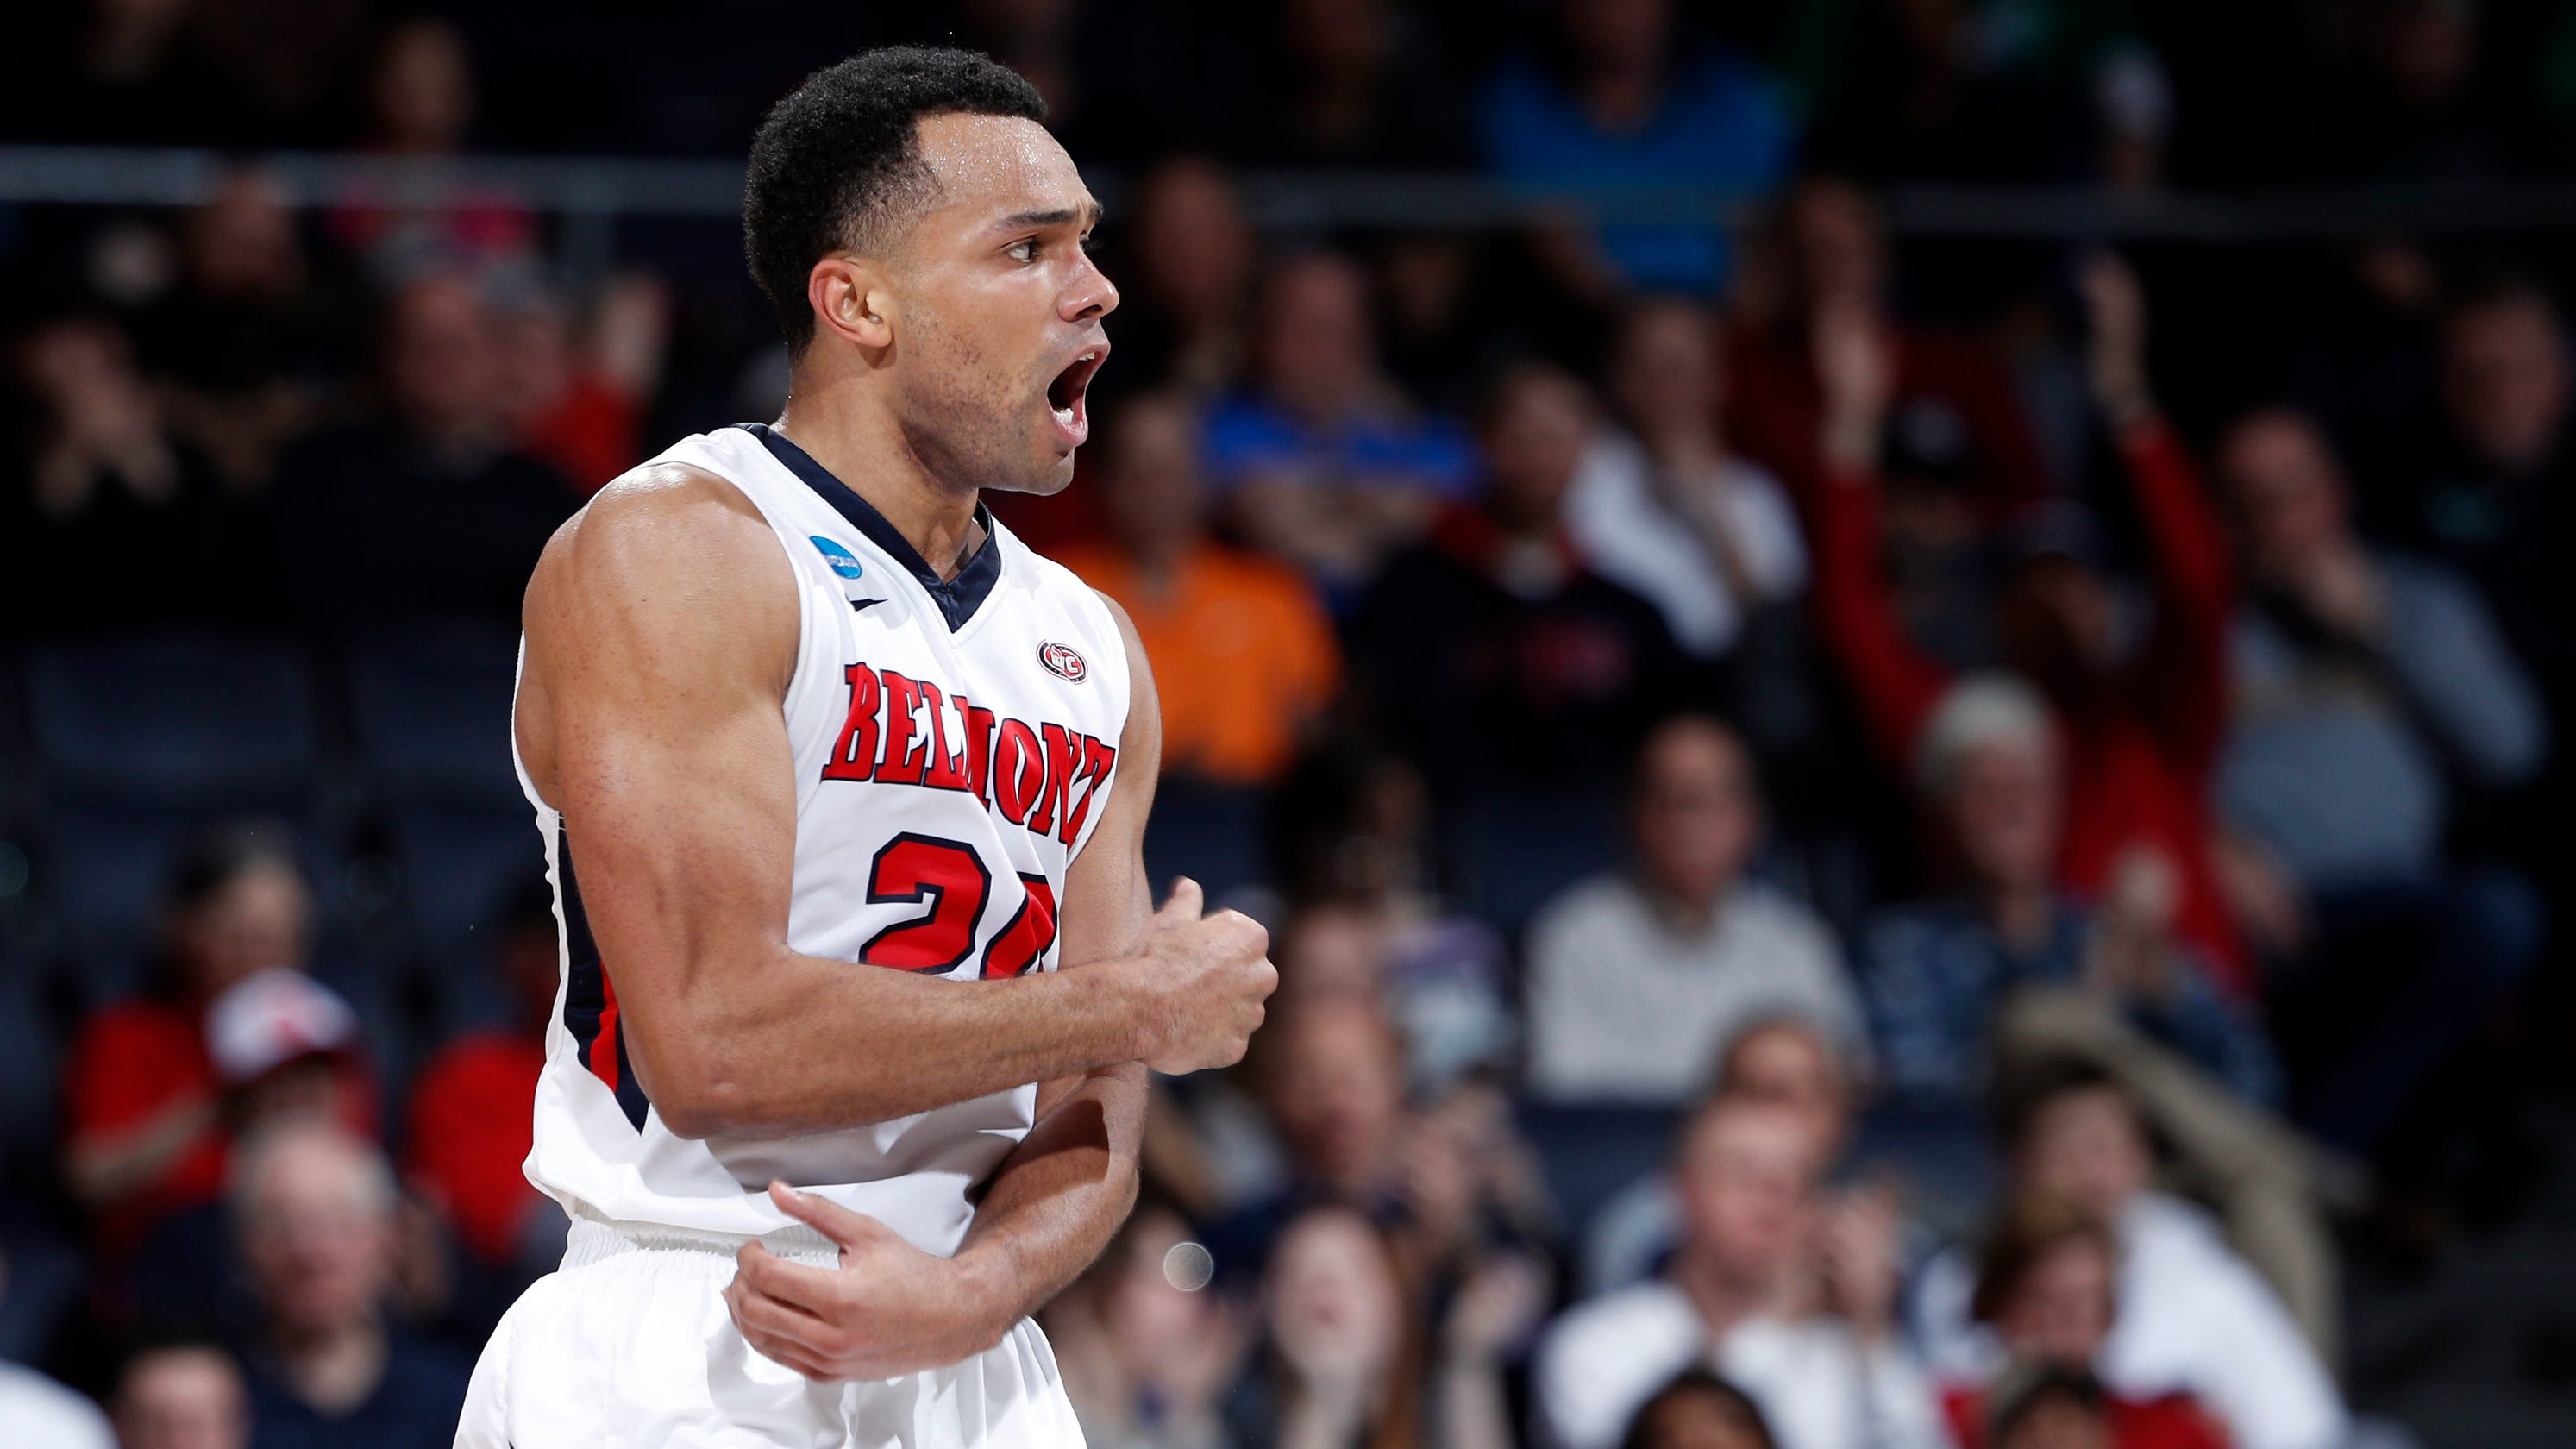 Belmont gets the biggest win in school history - and can be much better in NCAA tournament